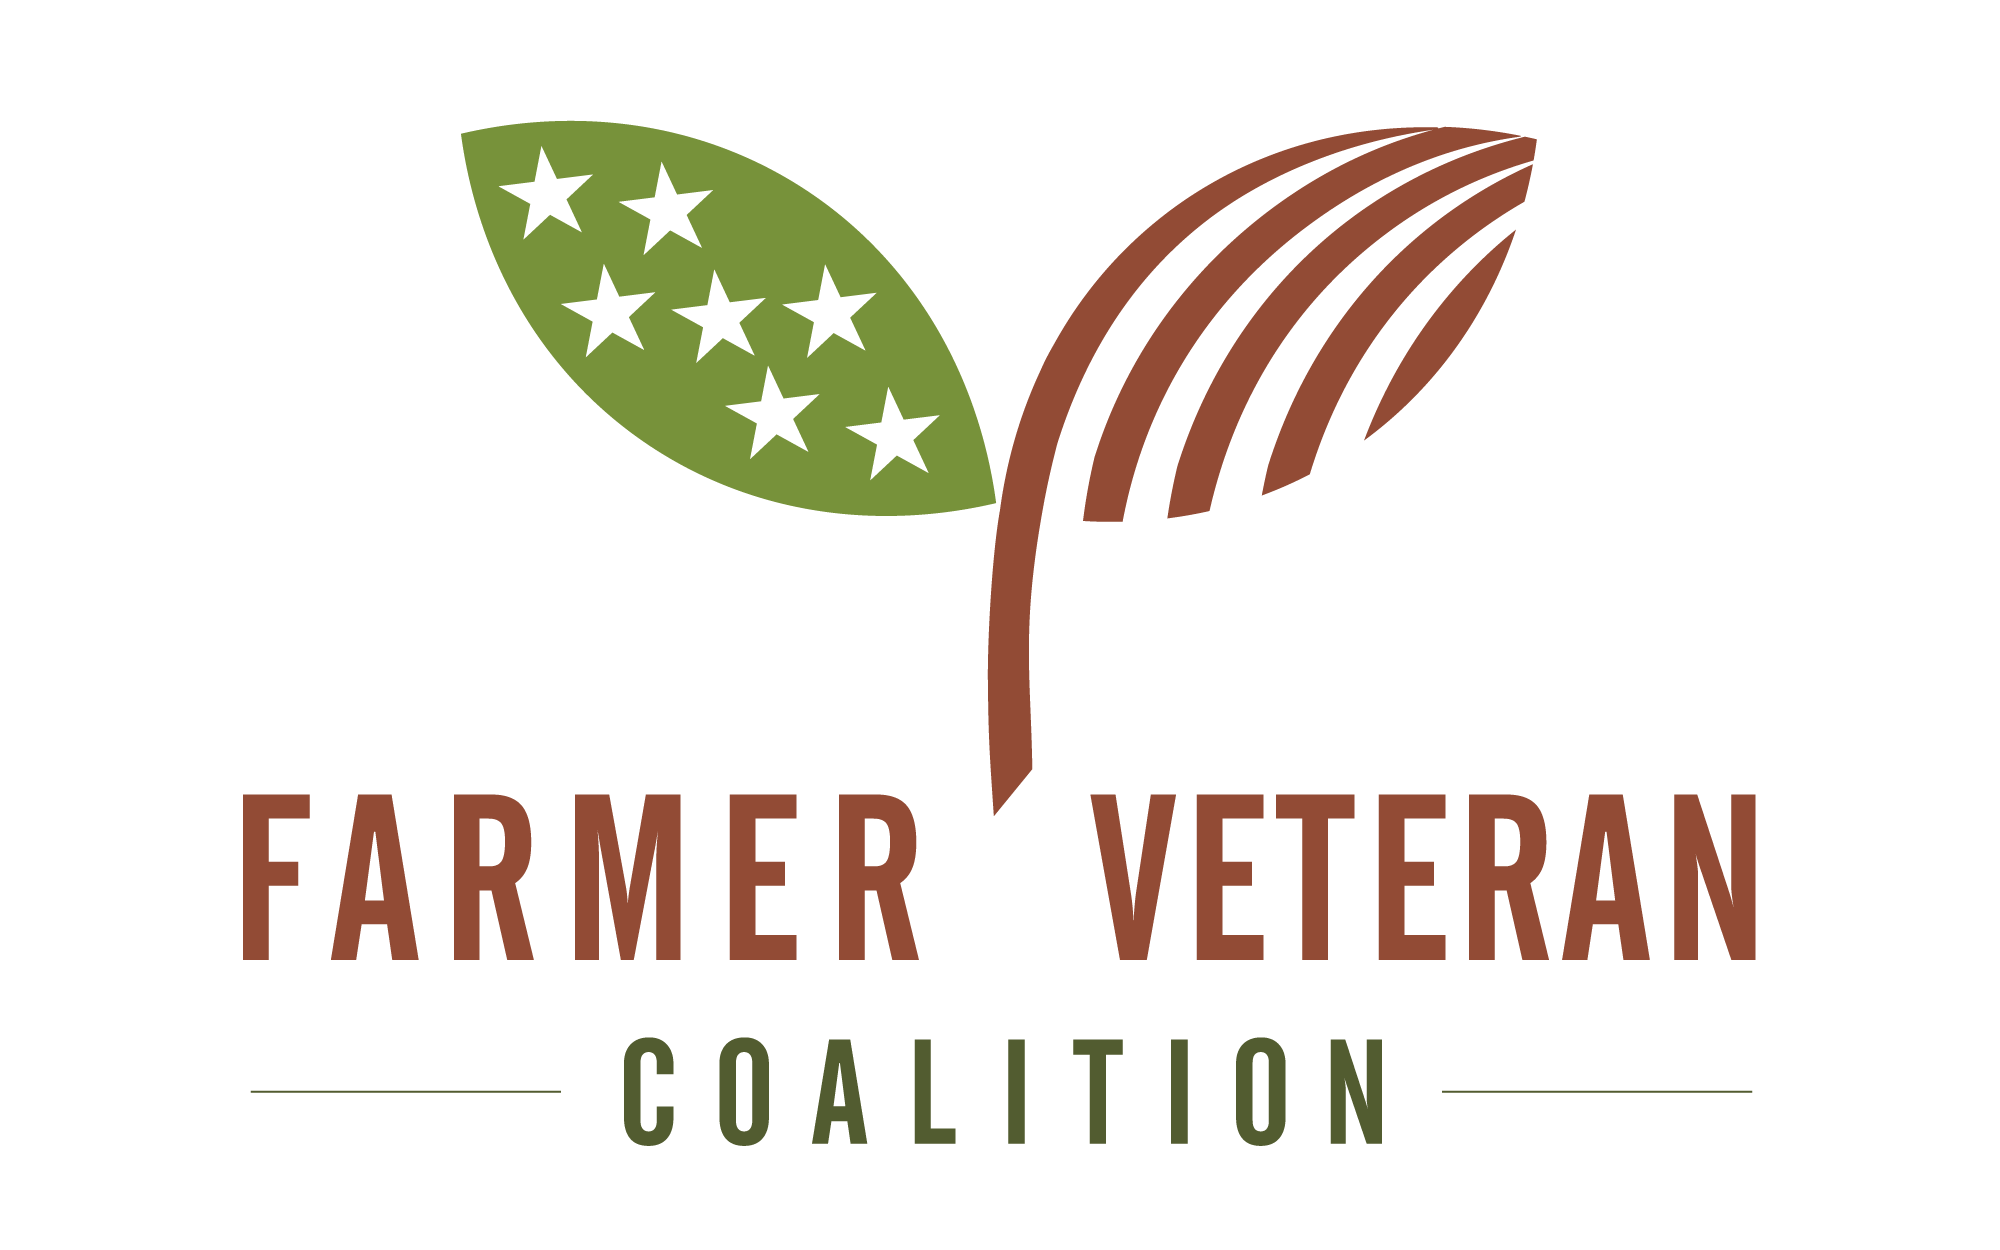 farmer veteran coalition logo transparent.png